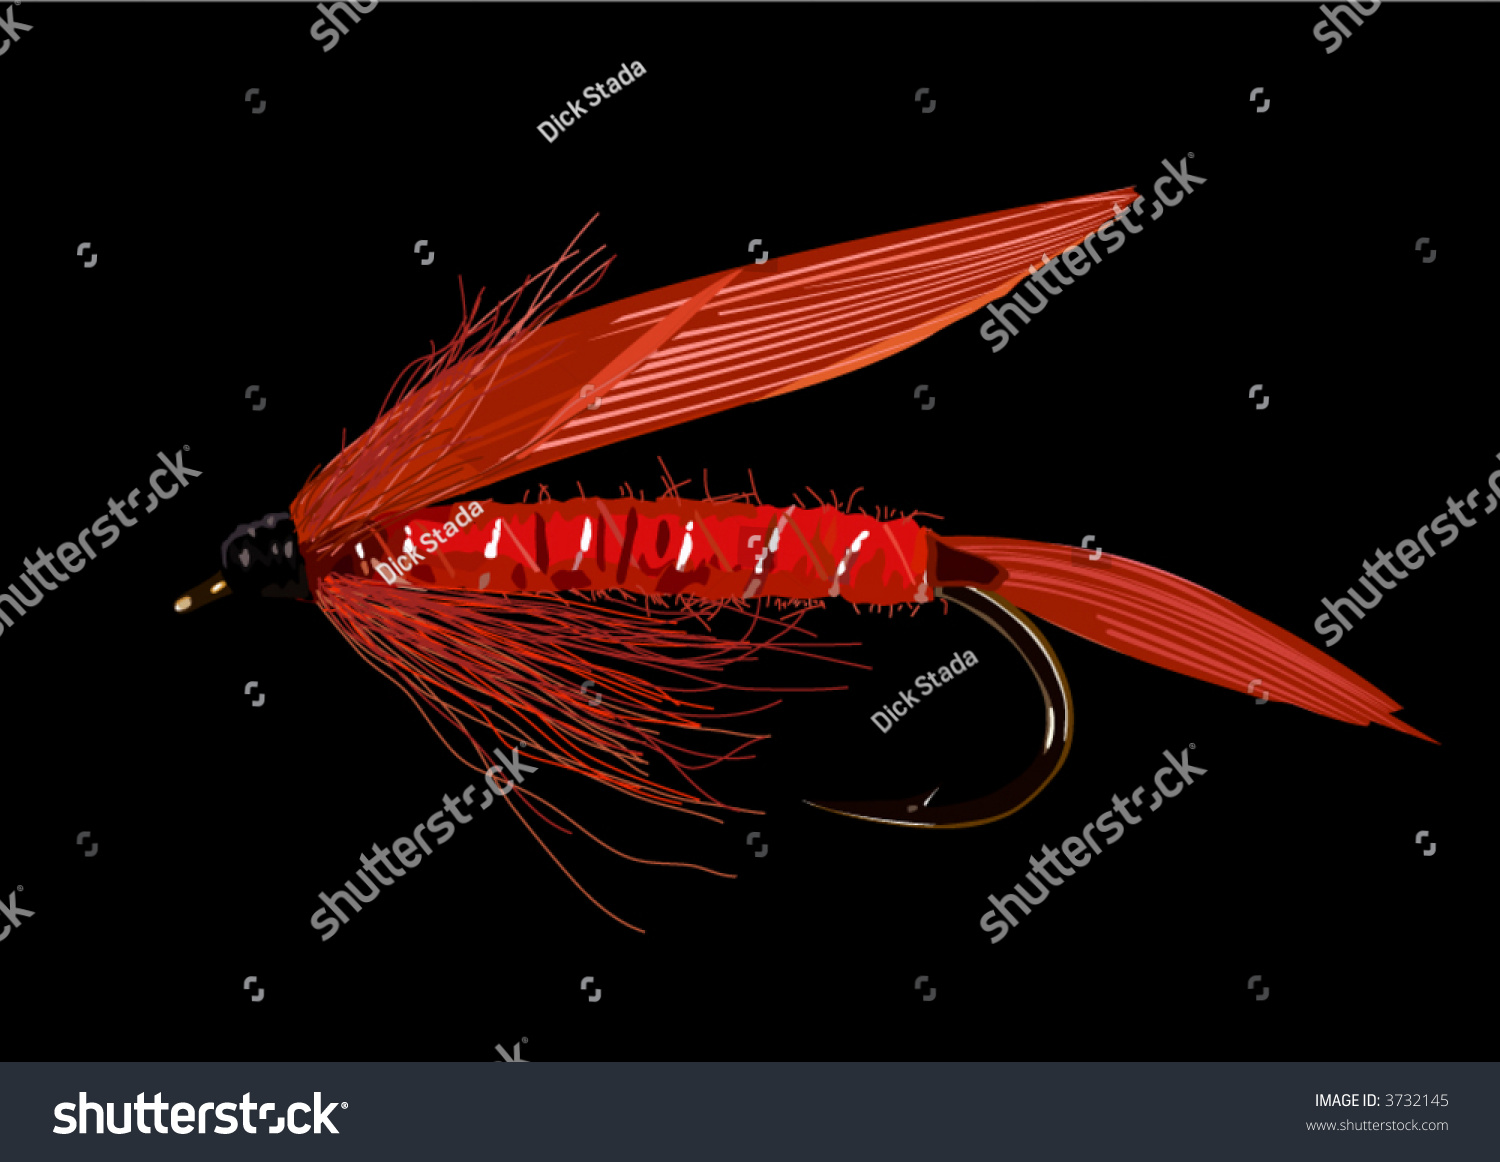 Realistic Fly Fishing Lure Red Colors Stock Vector 3732145 ...